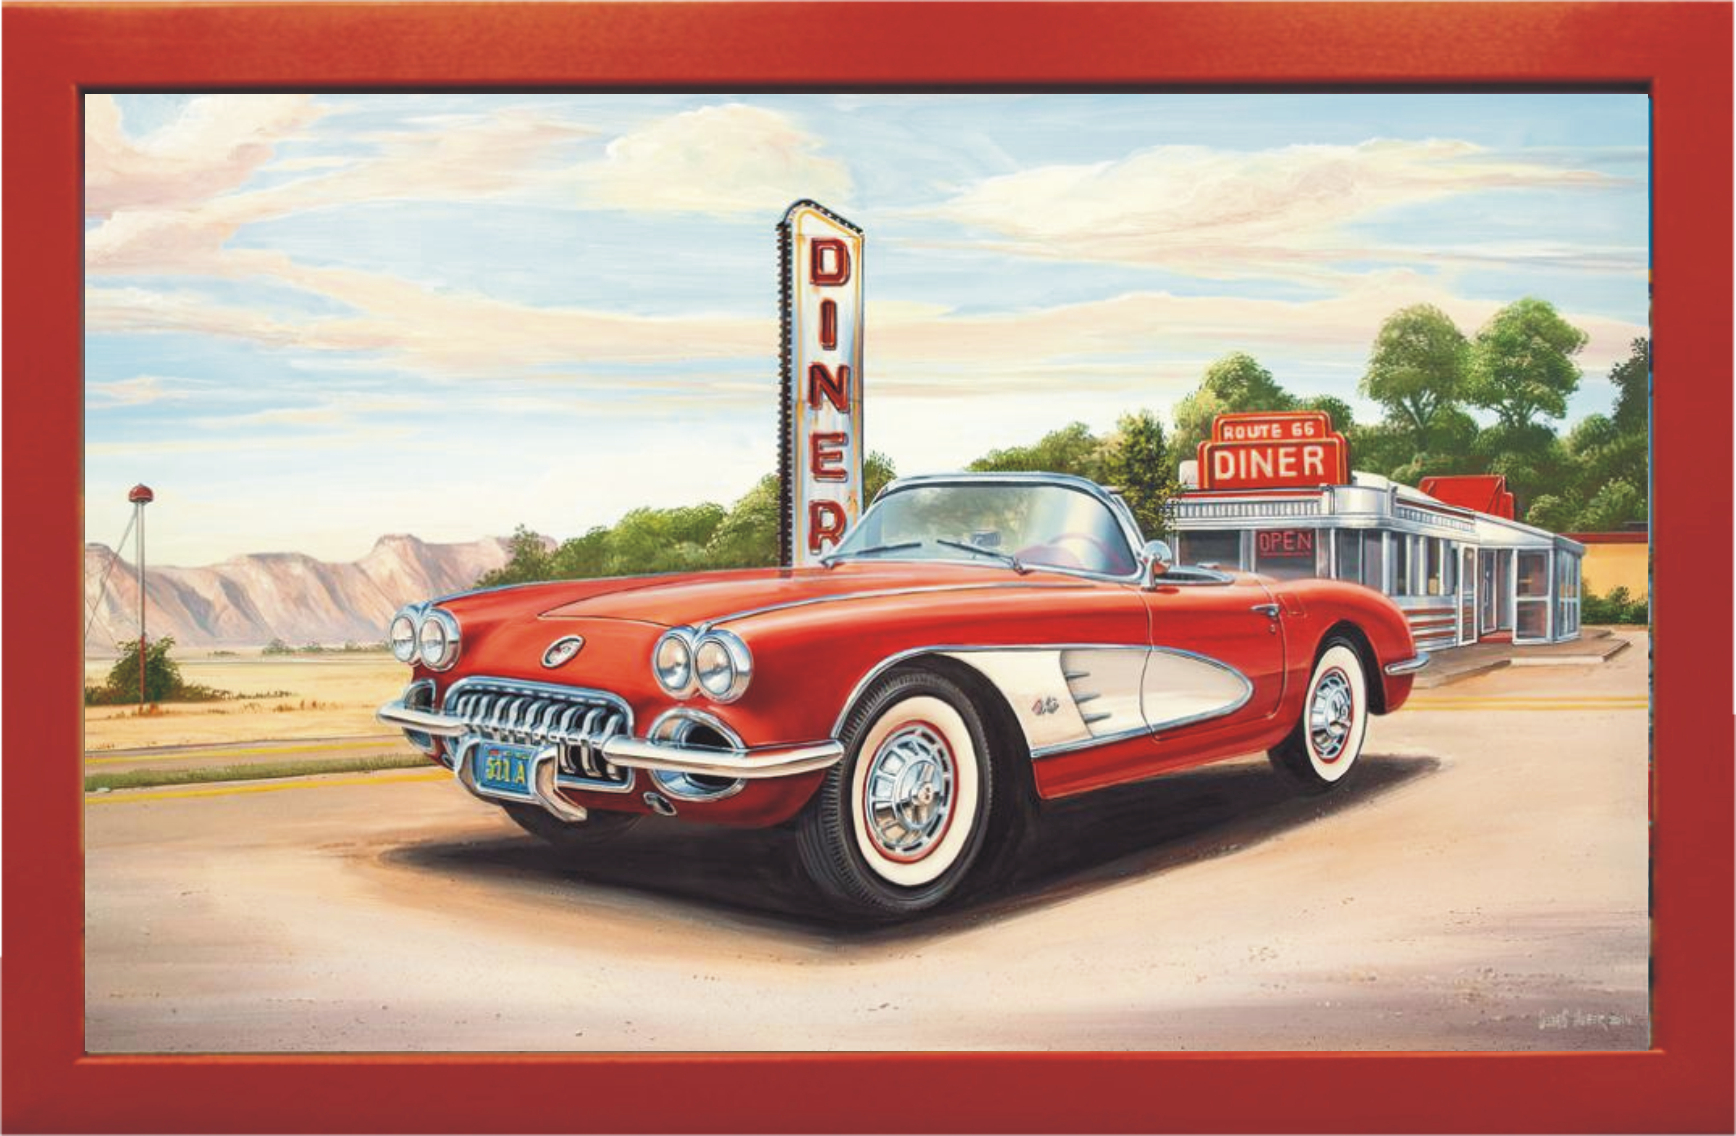 Vette at a Diner Wandbild